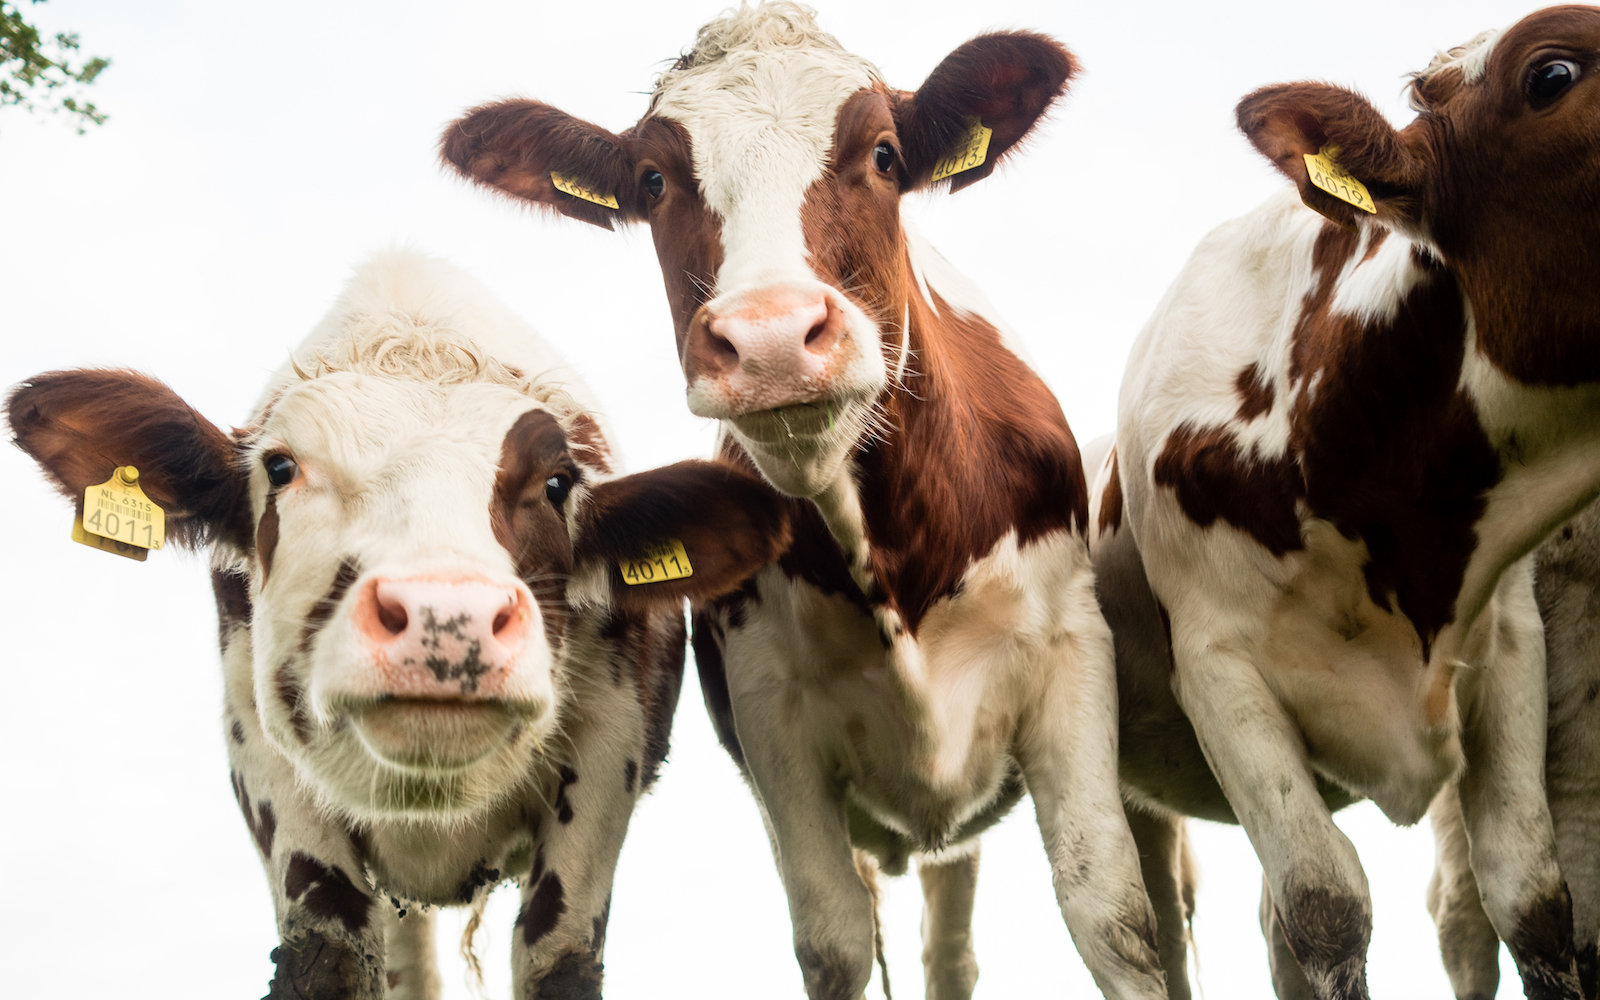 Three cows pose in a field